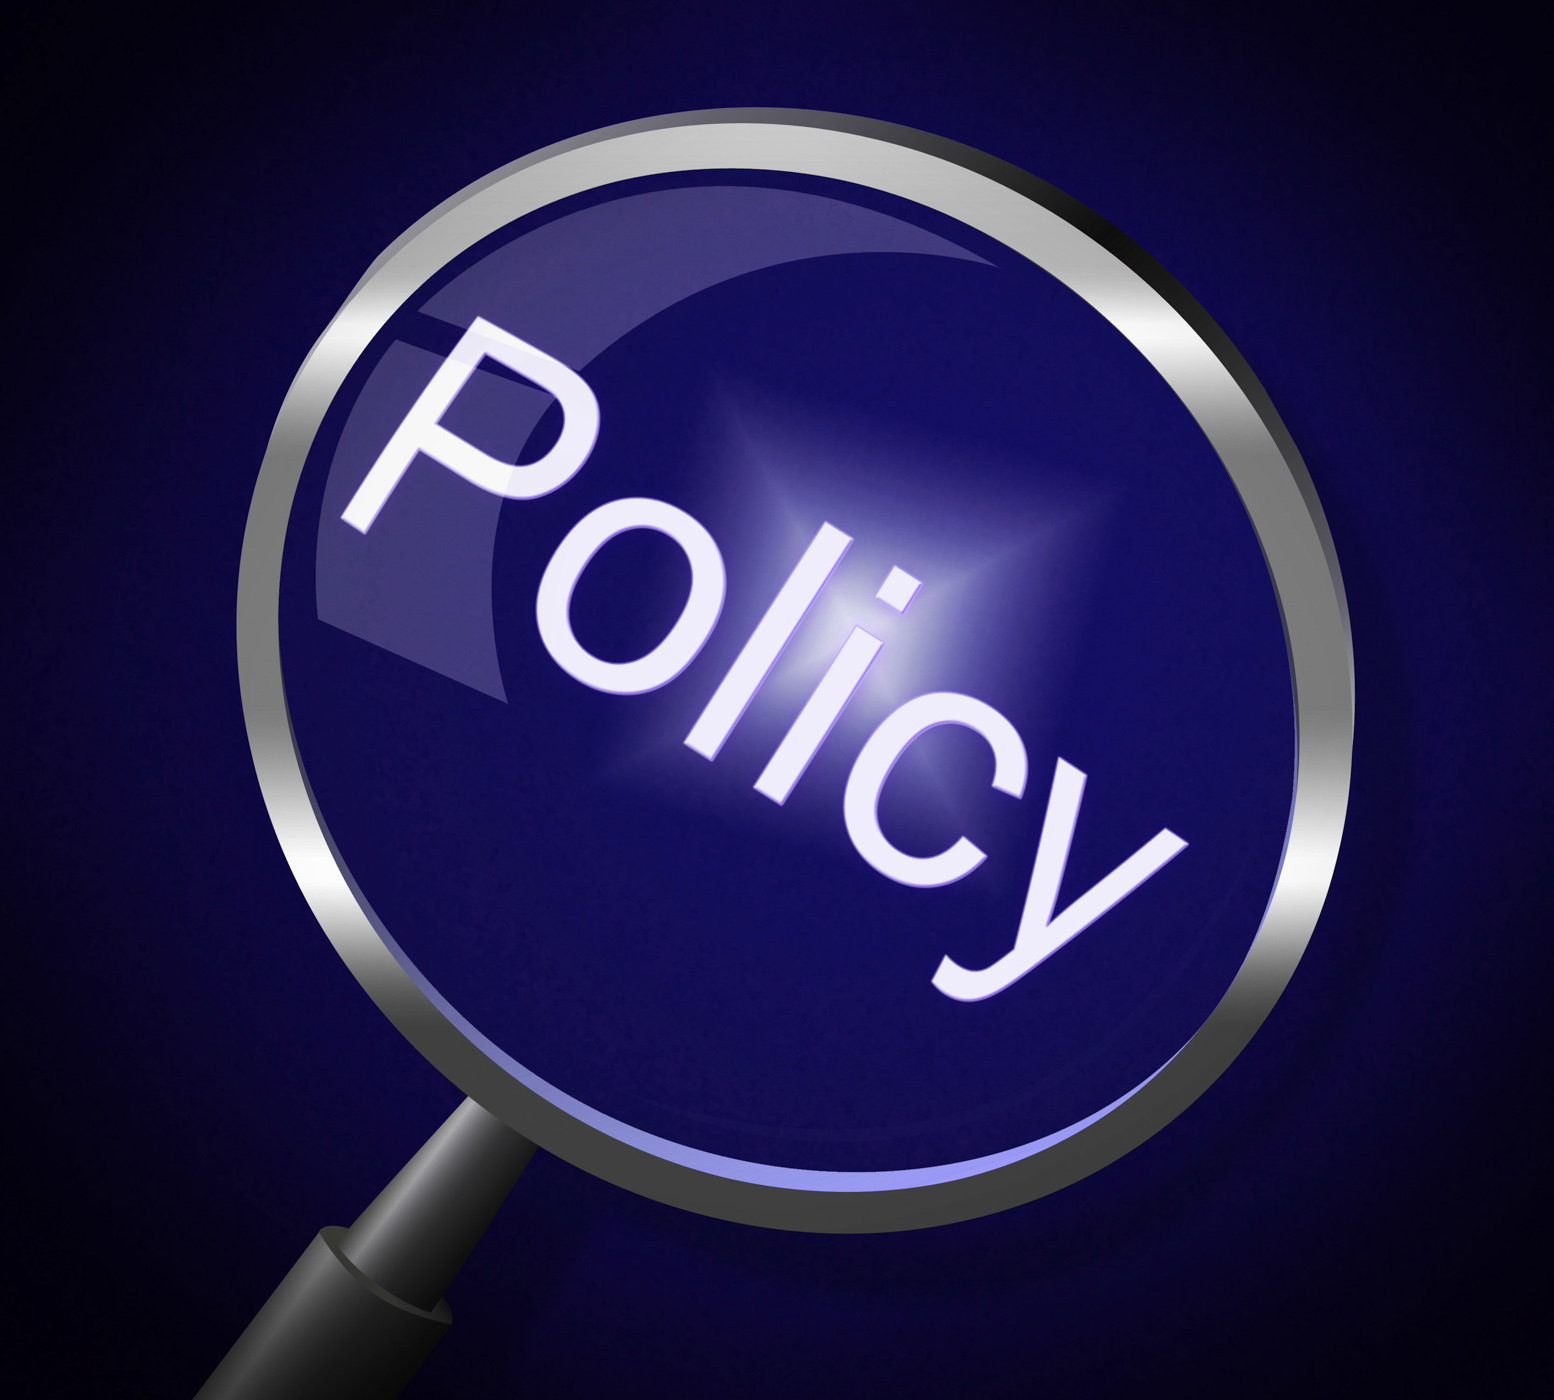 Policy Magnifier Shows Documentation Legal And Procedure, Agreement, Policy, Searching, Searches, HQ Photo